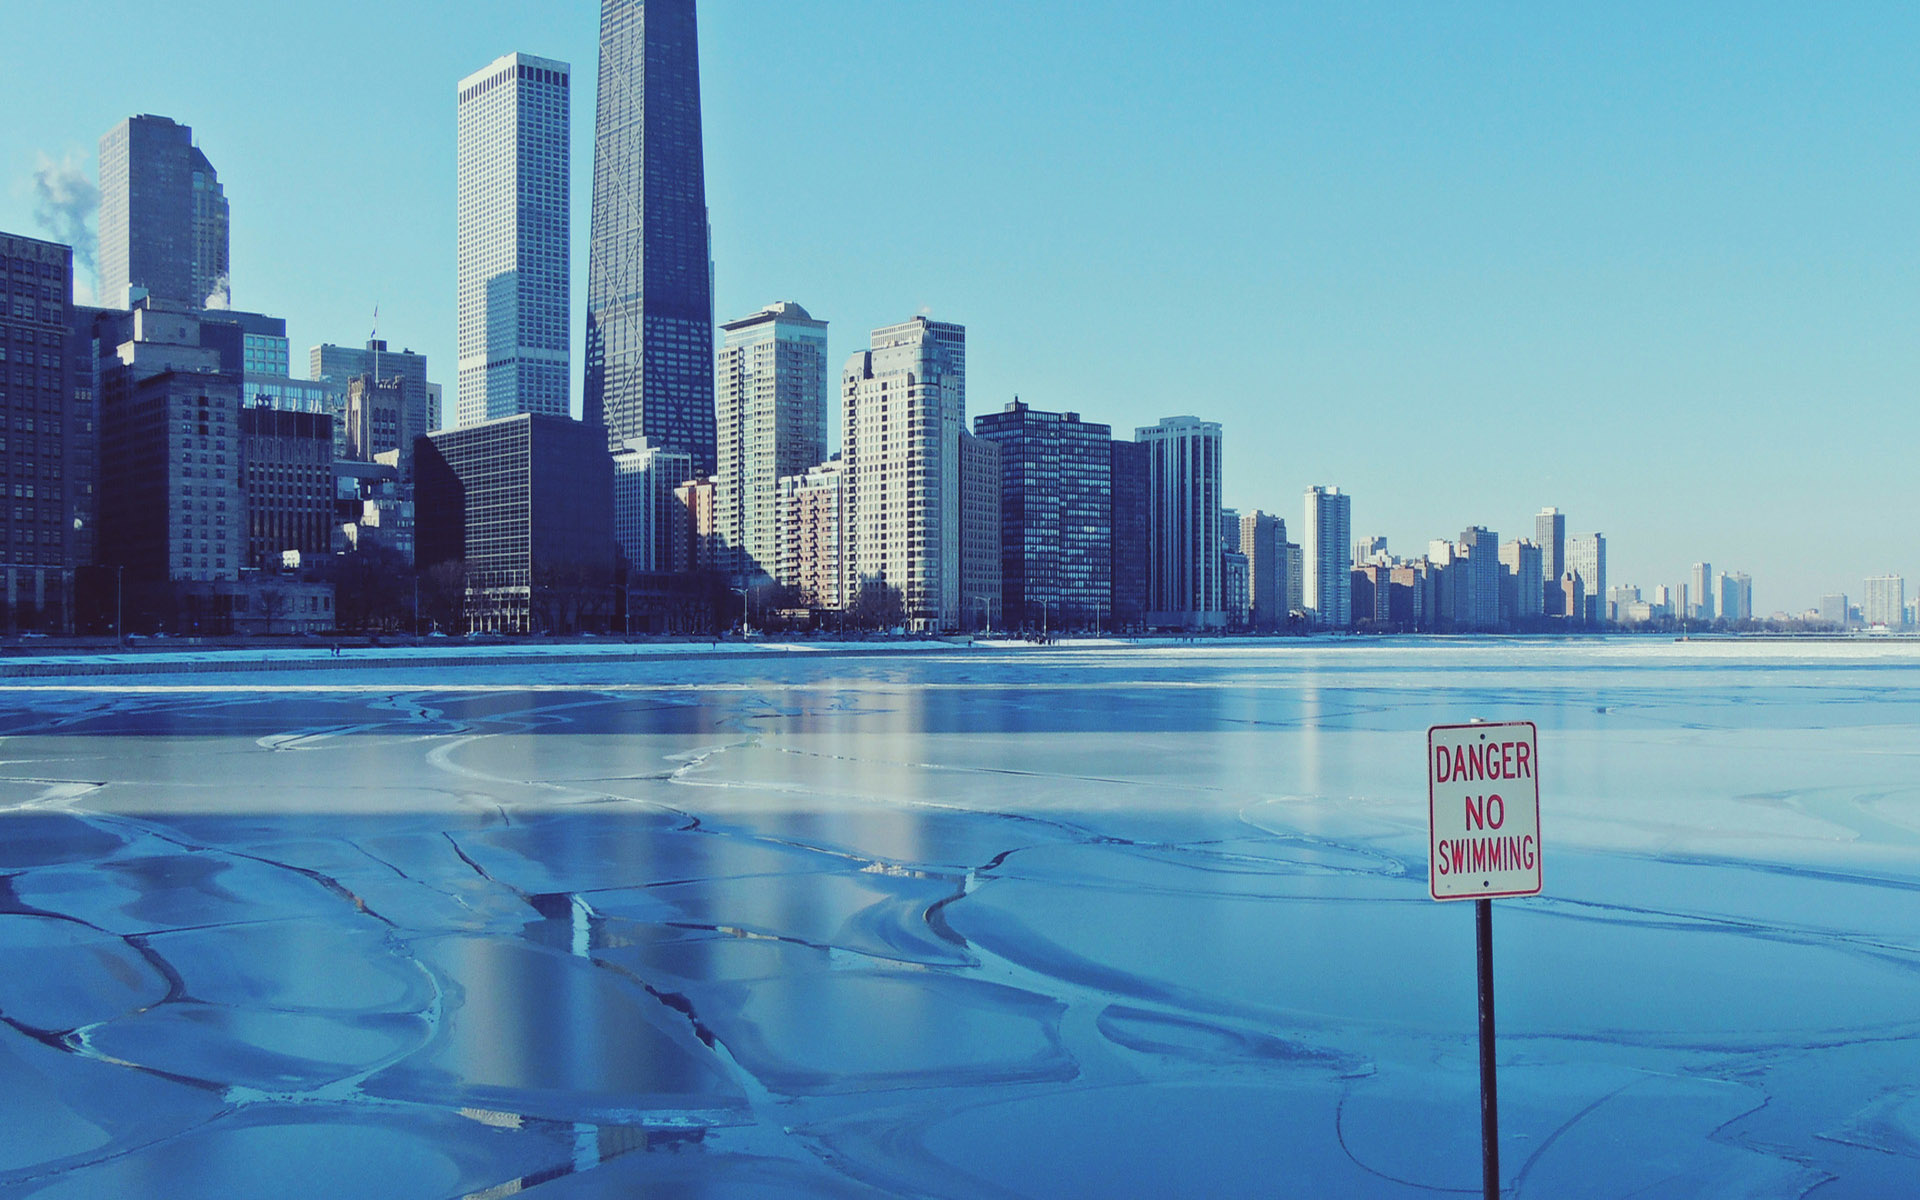 chicago hd wallpaper hd latest wallpapers